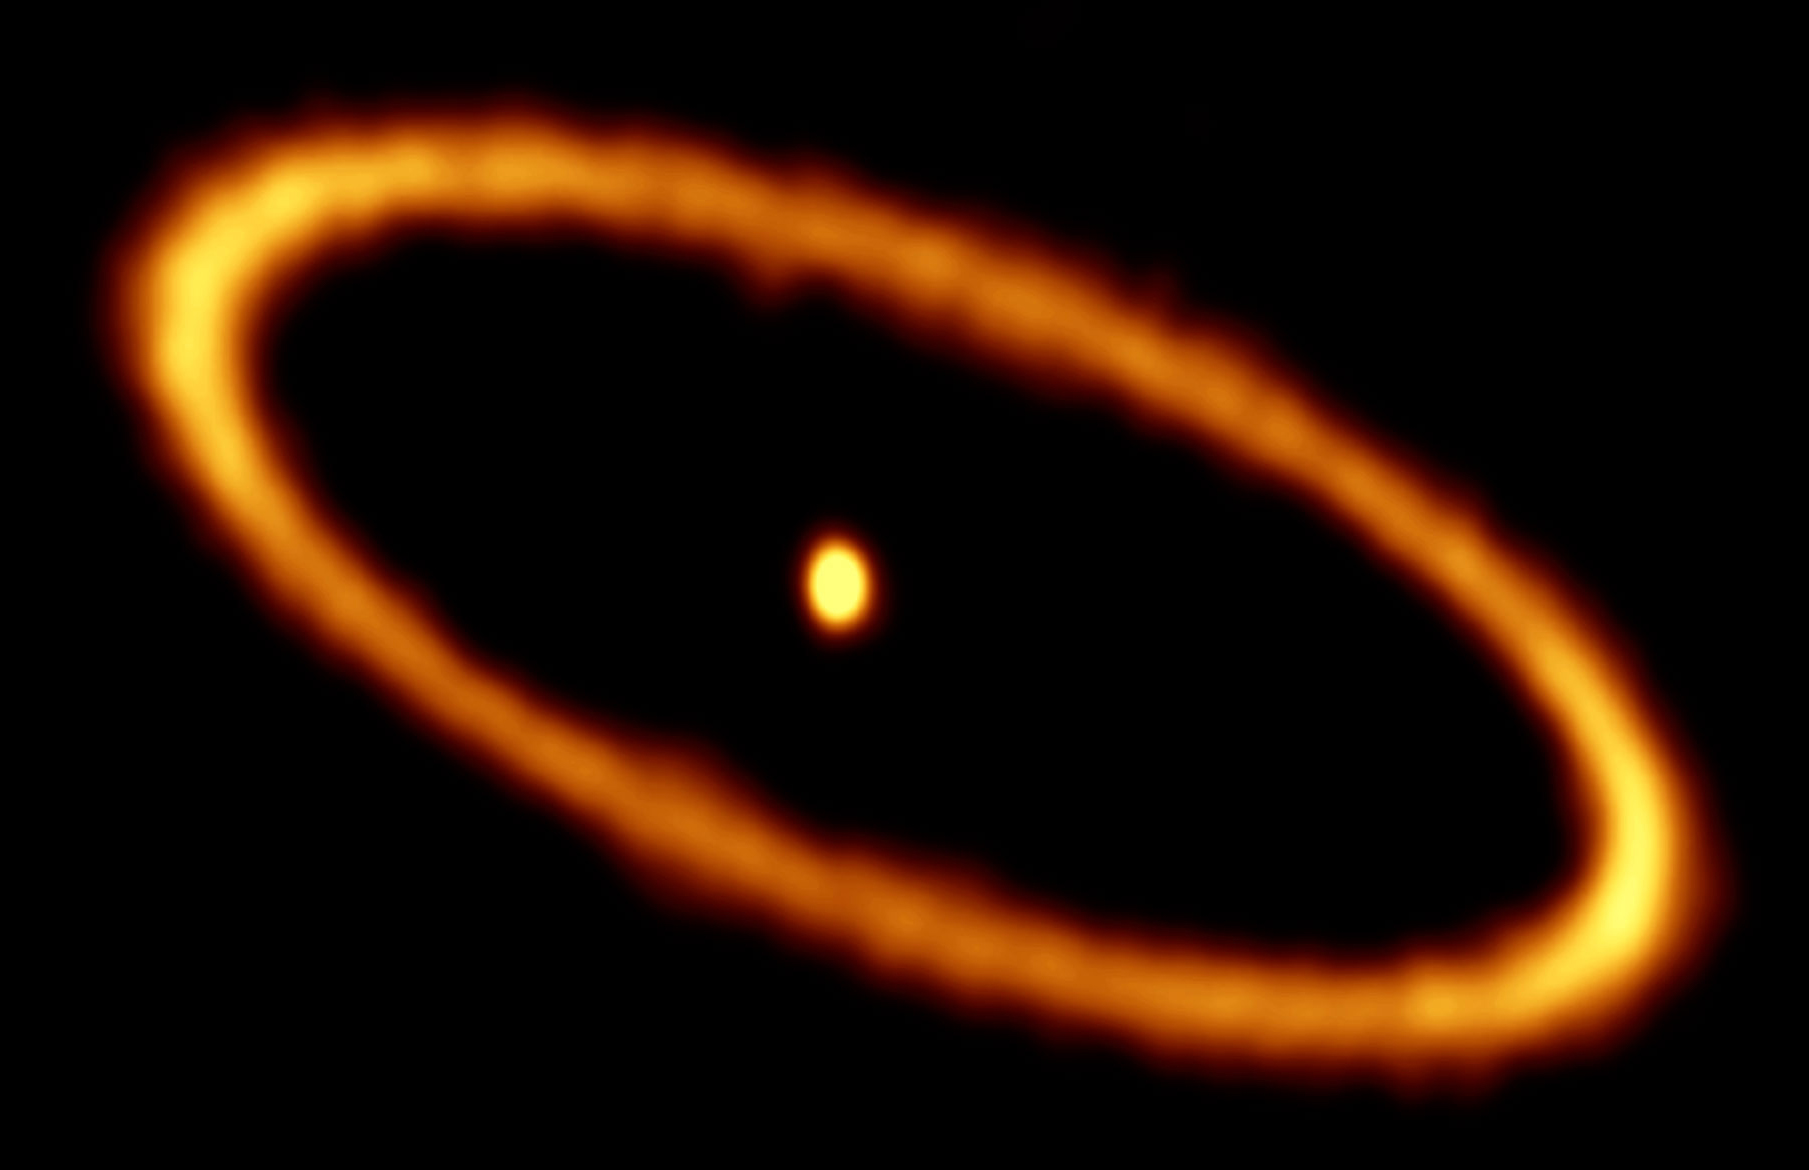 A ring of rubble encircles the star Fomalhaut